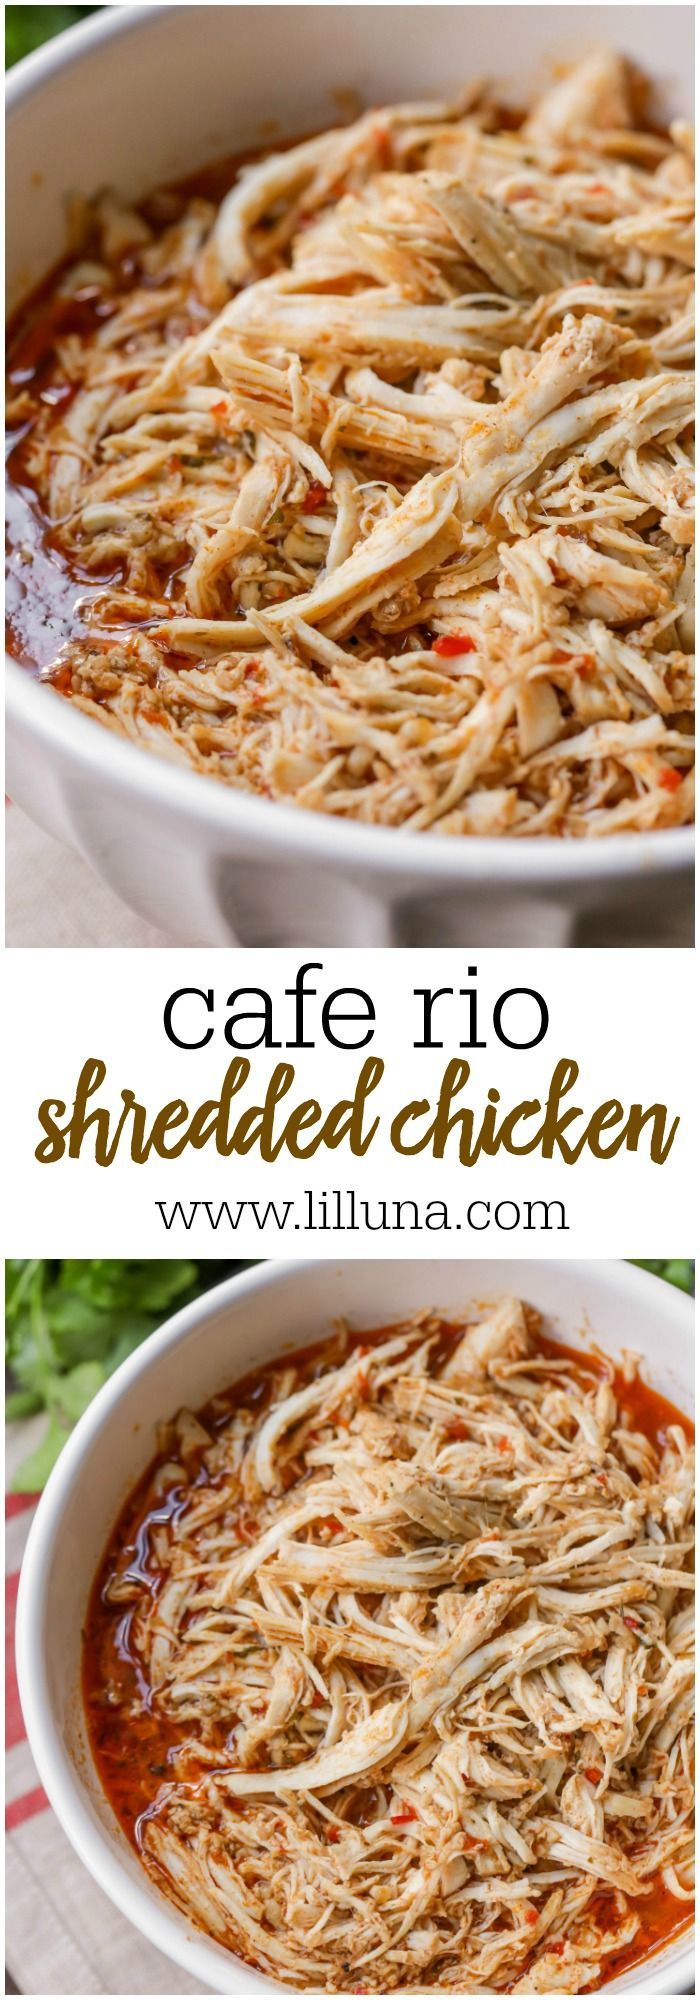 Copycat Cafe Rio Shredded Chicken - a simple and delicious chicken recipe that i Copycat Cafe Rio Shredded Chicken - a simple and delicious chicken recipe that i... -